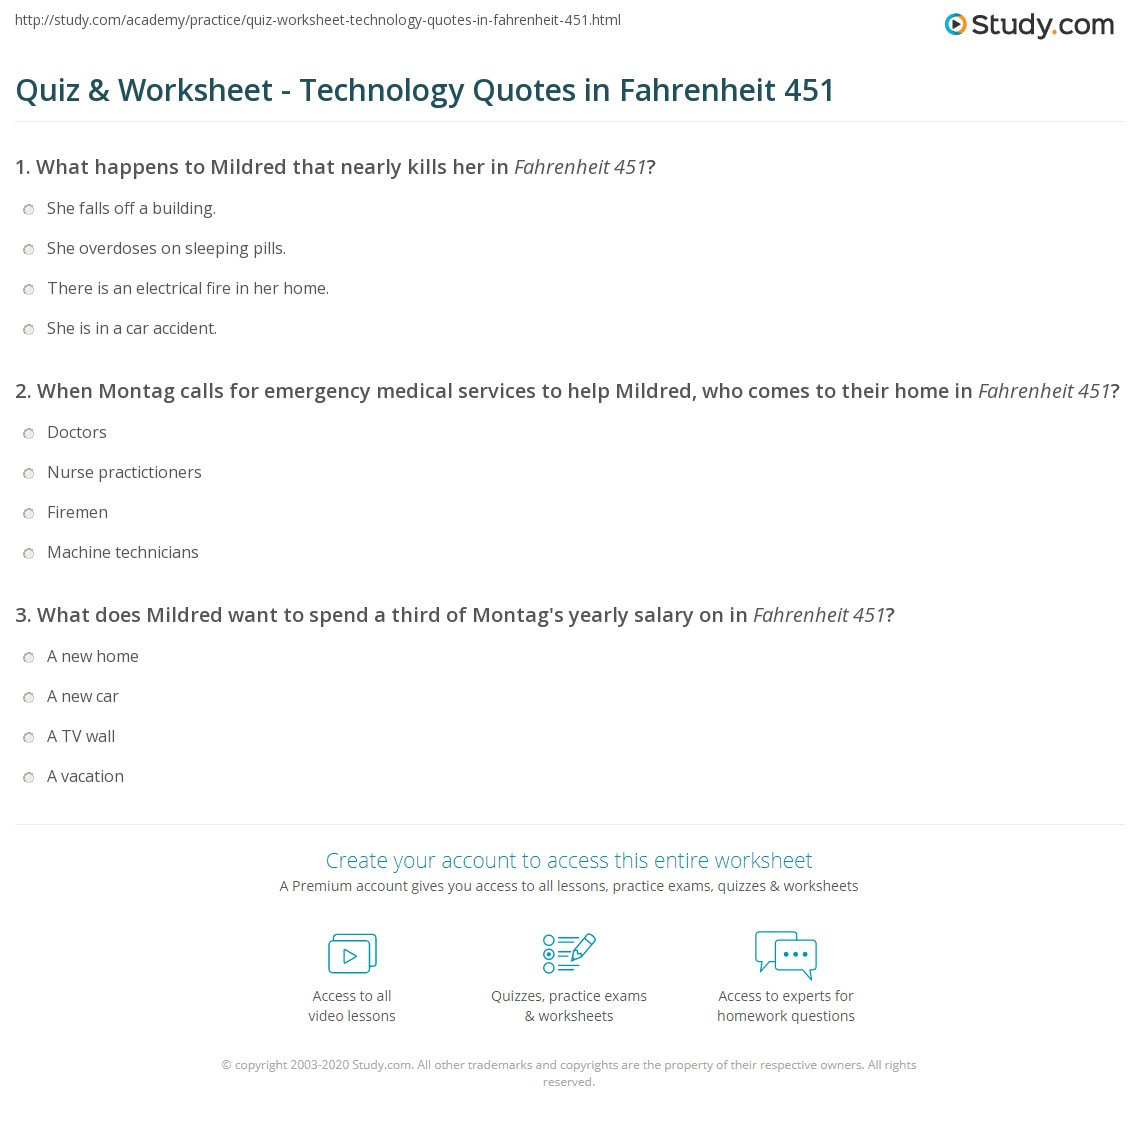 quiz worksheet technology quotes in fahrenheit com print technology quotes in fahrenheit 451 examples analysis worksheet